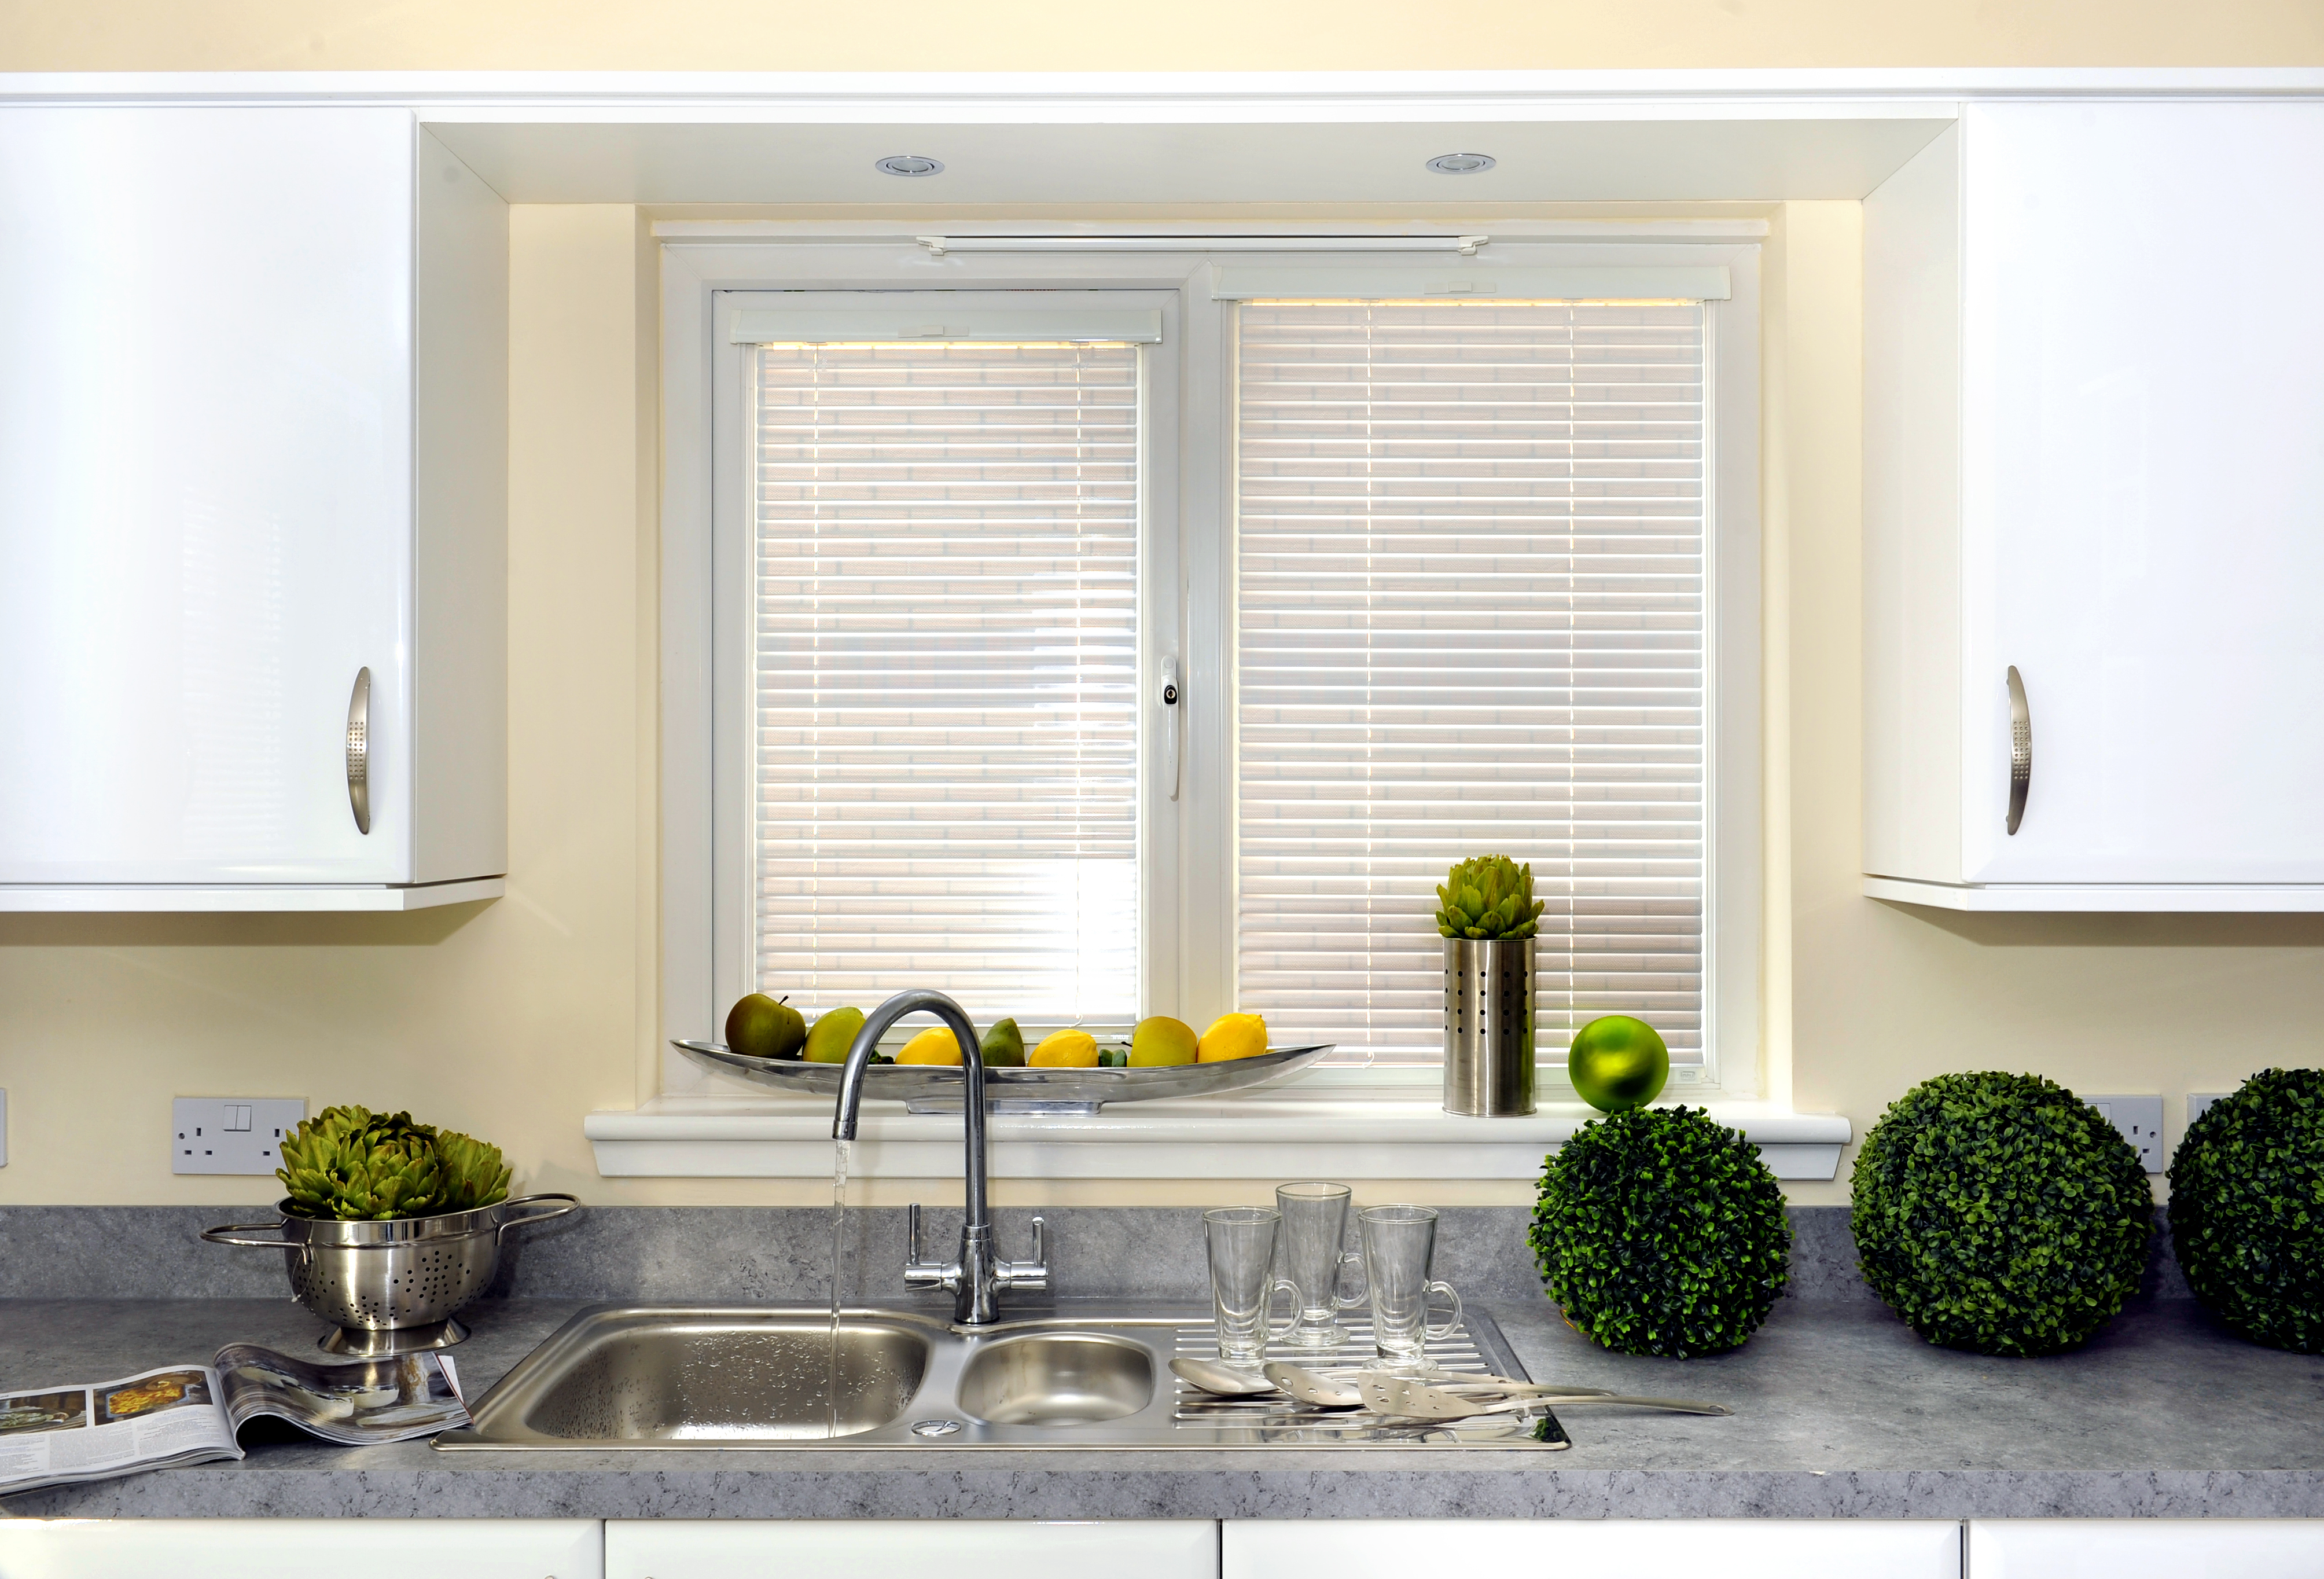 Window blinds Coventry. White venetian blinds by kitchen sink.